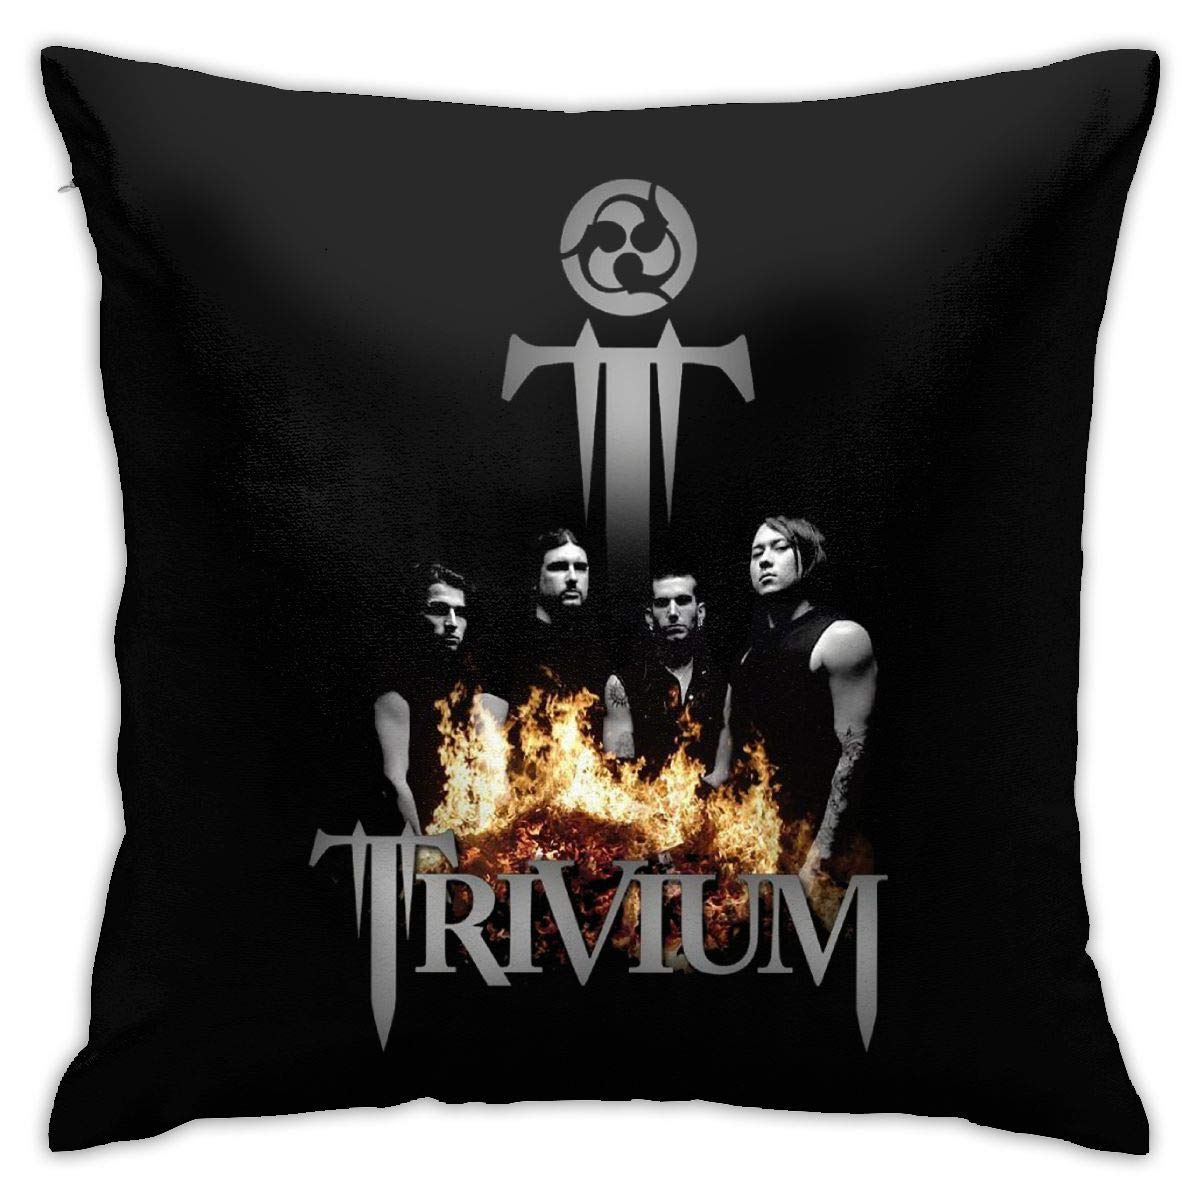 Qq2-Army-Store Trivium Pillow Covers Sofa Home Decor Pattern Pillow Covers